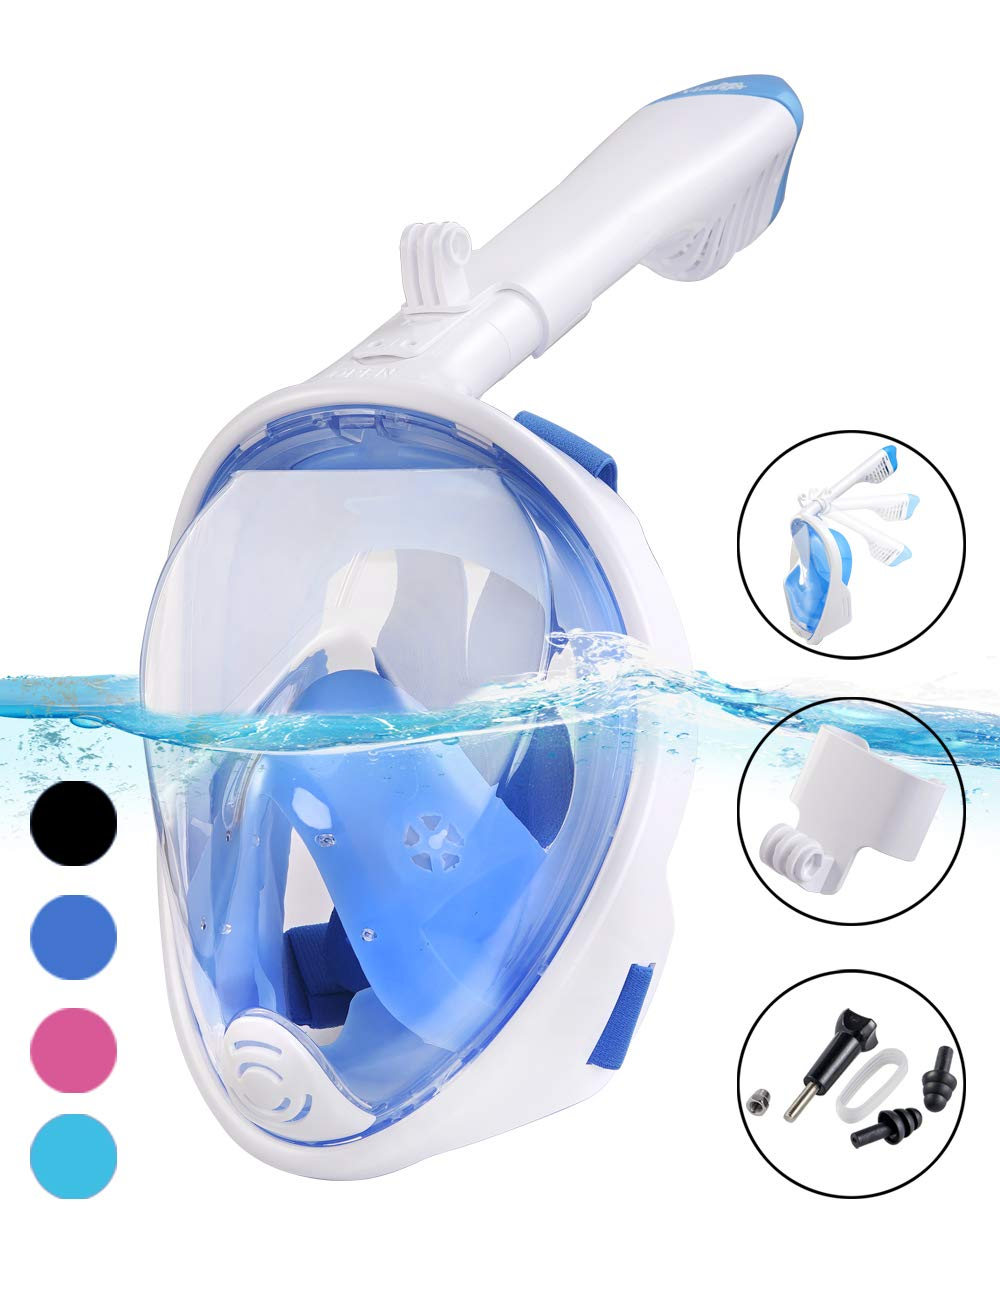 X-Lounger Snorkel Mask, 2019 New Foldable Snorkeling Mask Full Face with Detachable Camera Mount Pivot Arm and Earplug, 180° Large View Easy Breath Dry Top Set Anti-Fog Anti-Leak for Adults Blue S M